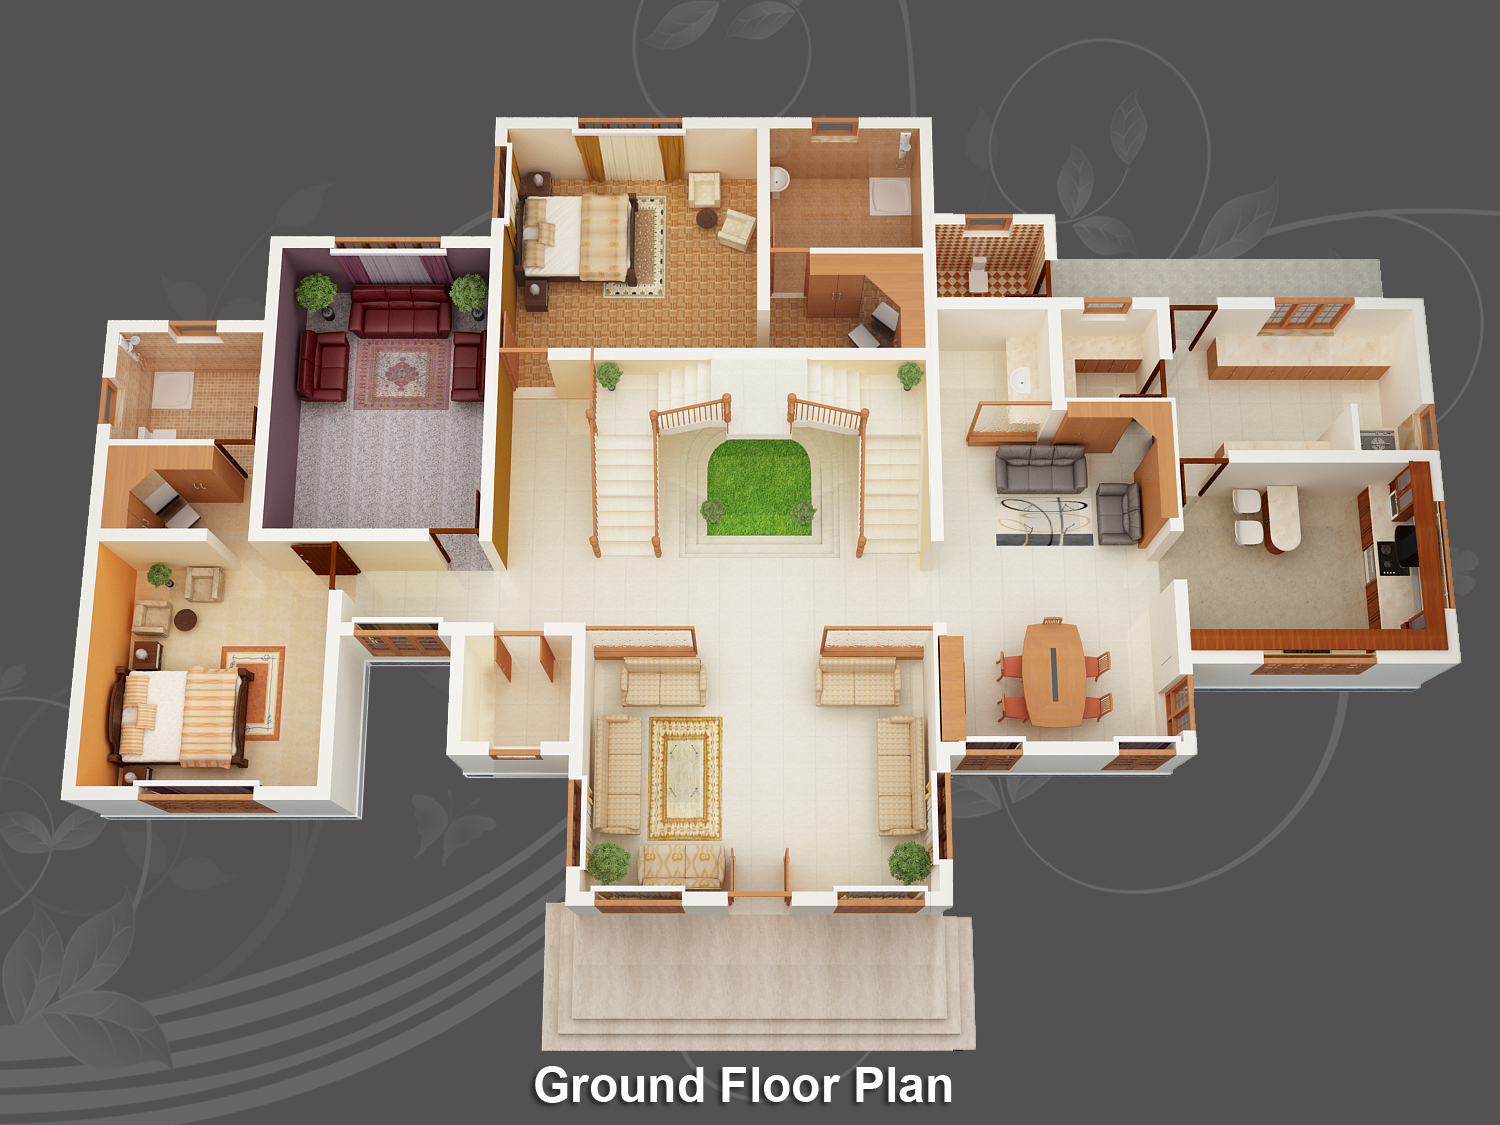 Evens construction pvt ltd 3d house plan 20 05 2011 3d design free